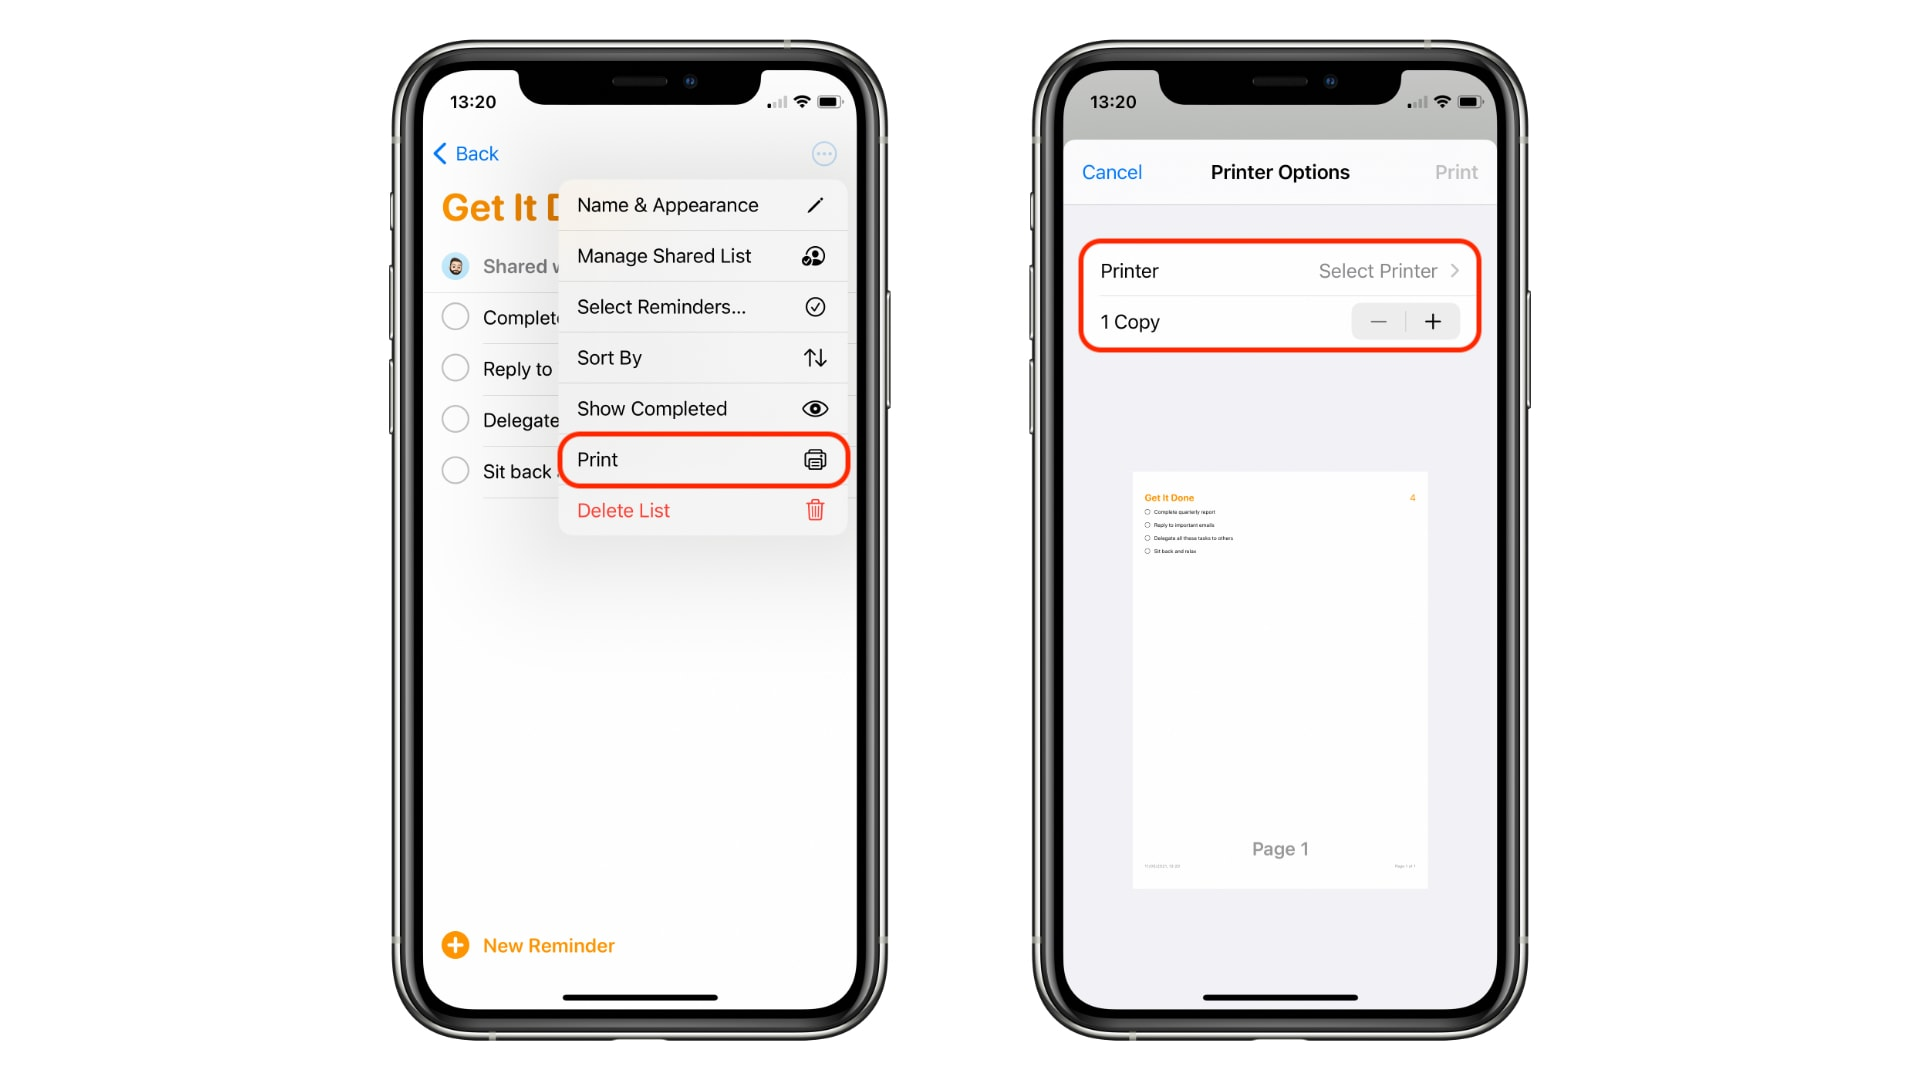 How to print a list from Reminders